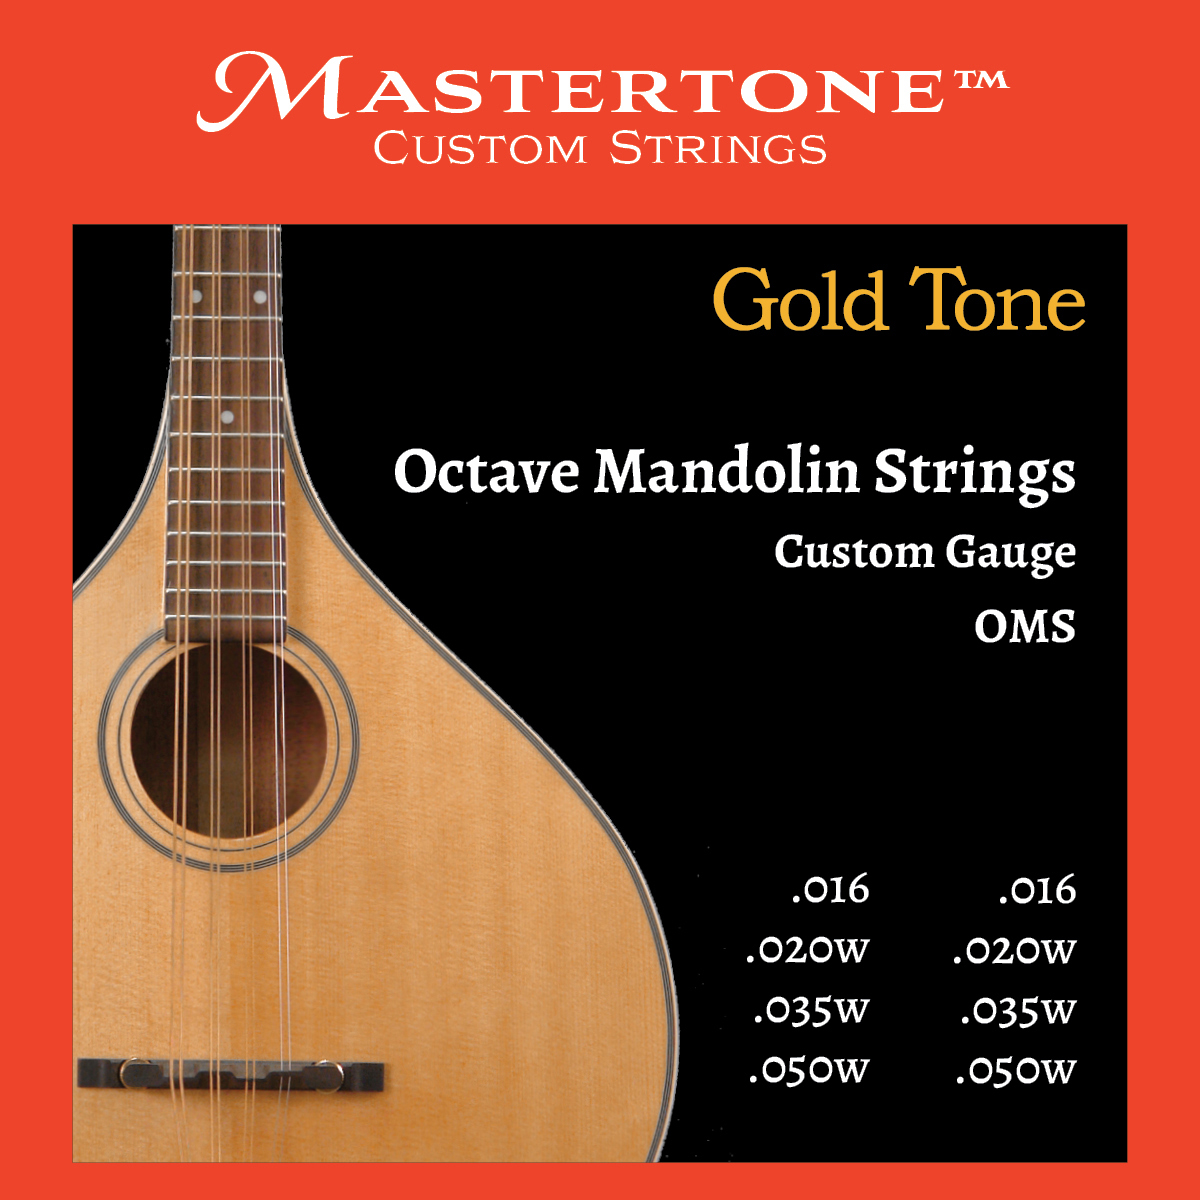 Octave Mandolin Strings